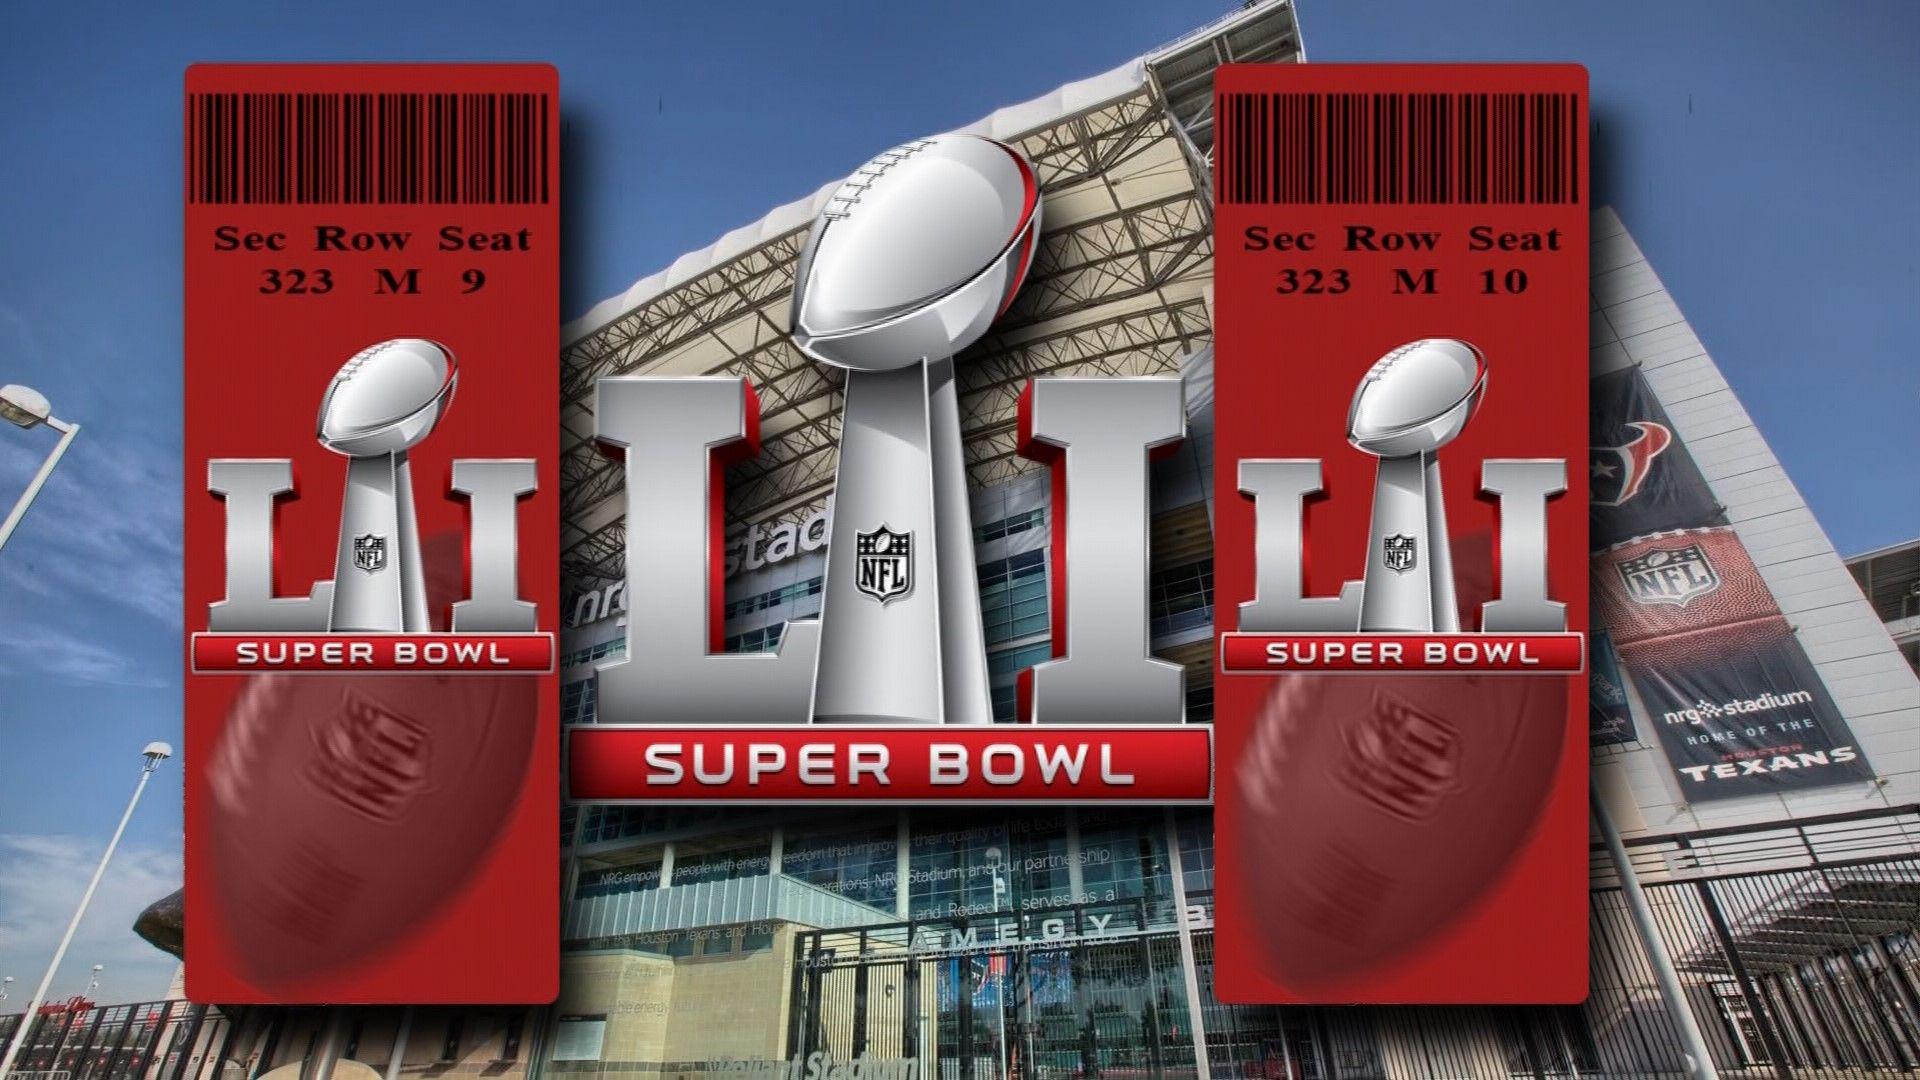 How difficult is it to get a Super Bowl 51 ticket?